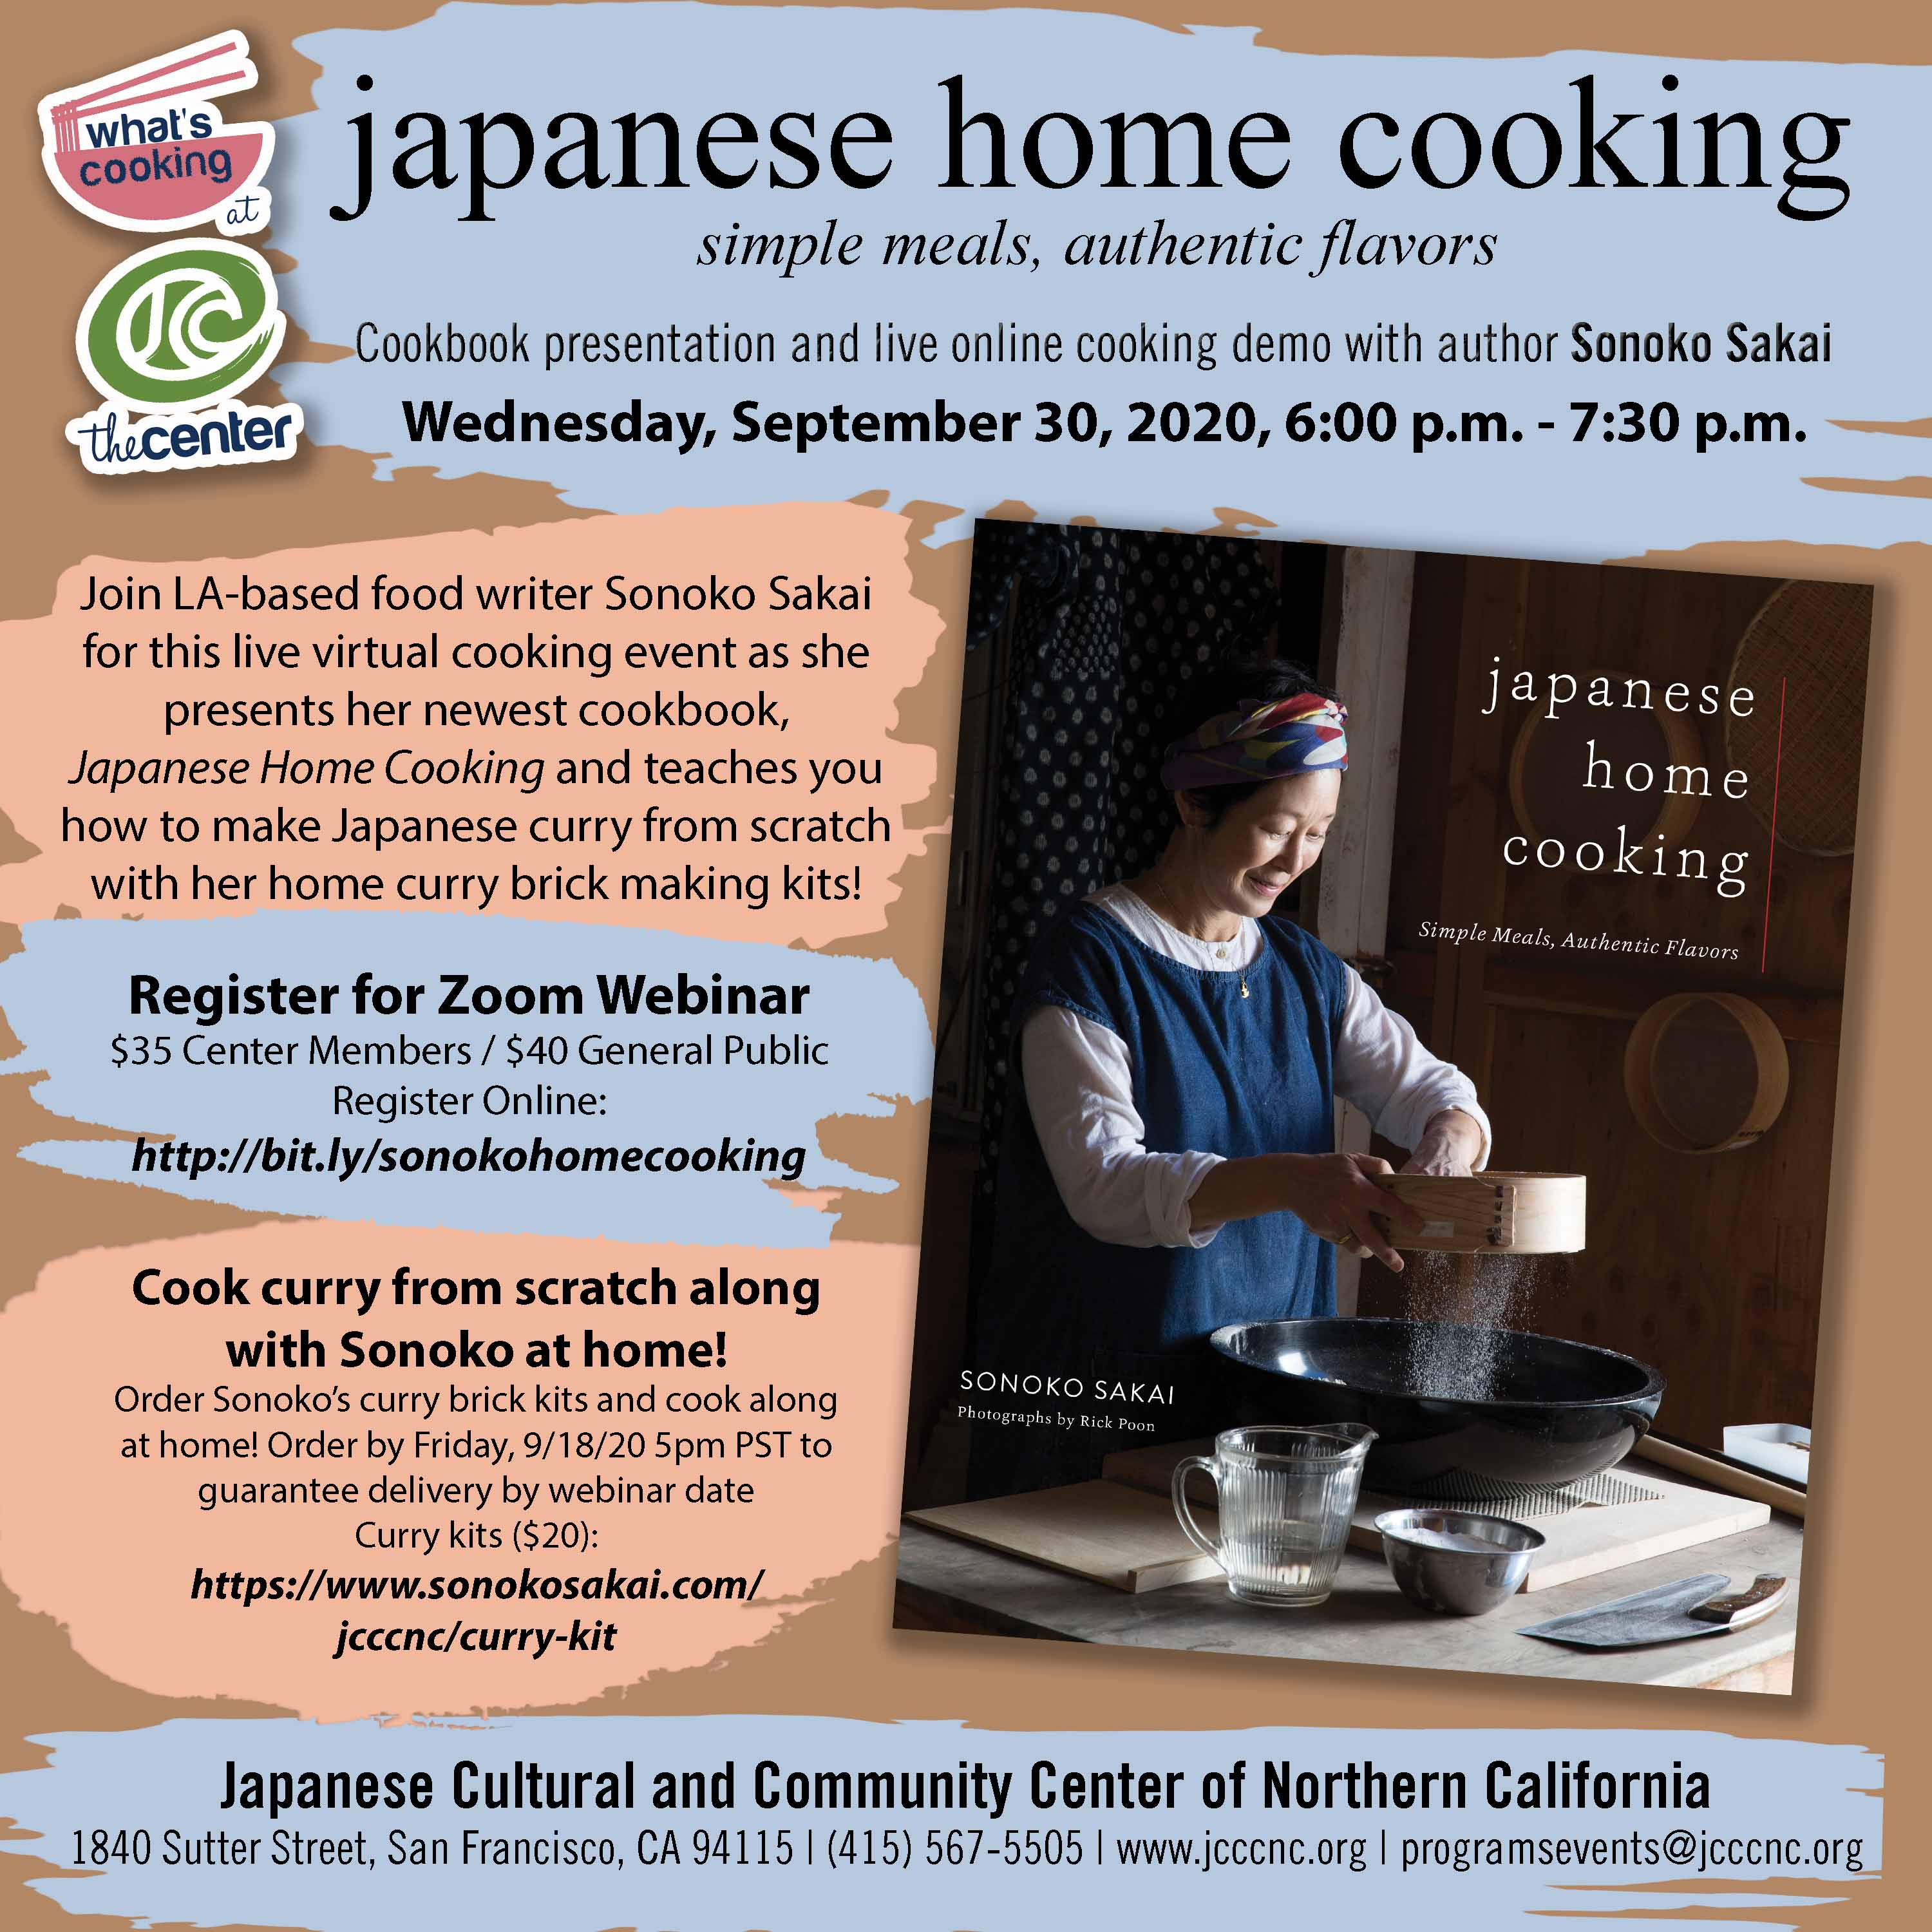 Japanese Home Cooking with Sonoko Sakai – Cookbook Presentation and Live Cooking Demo